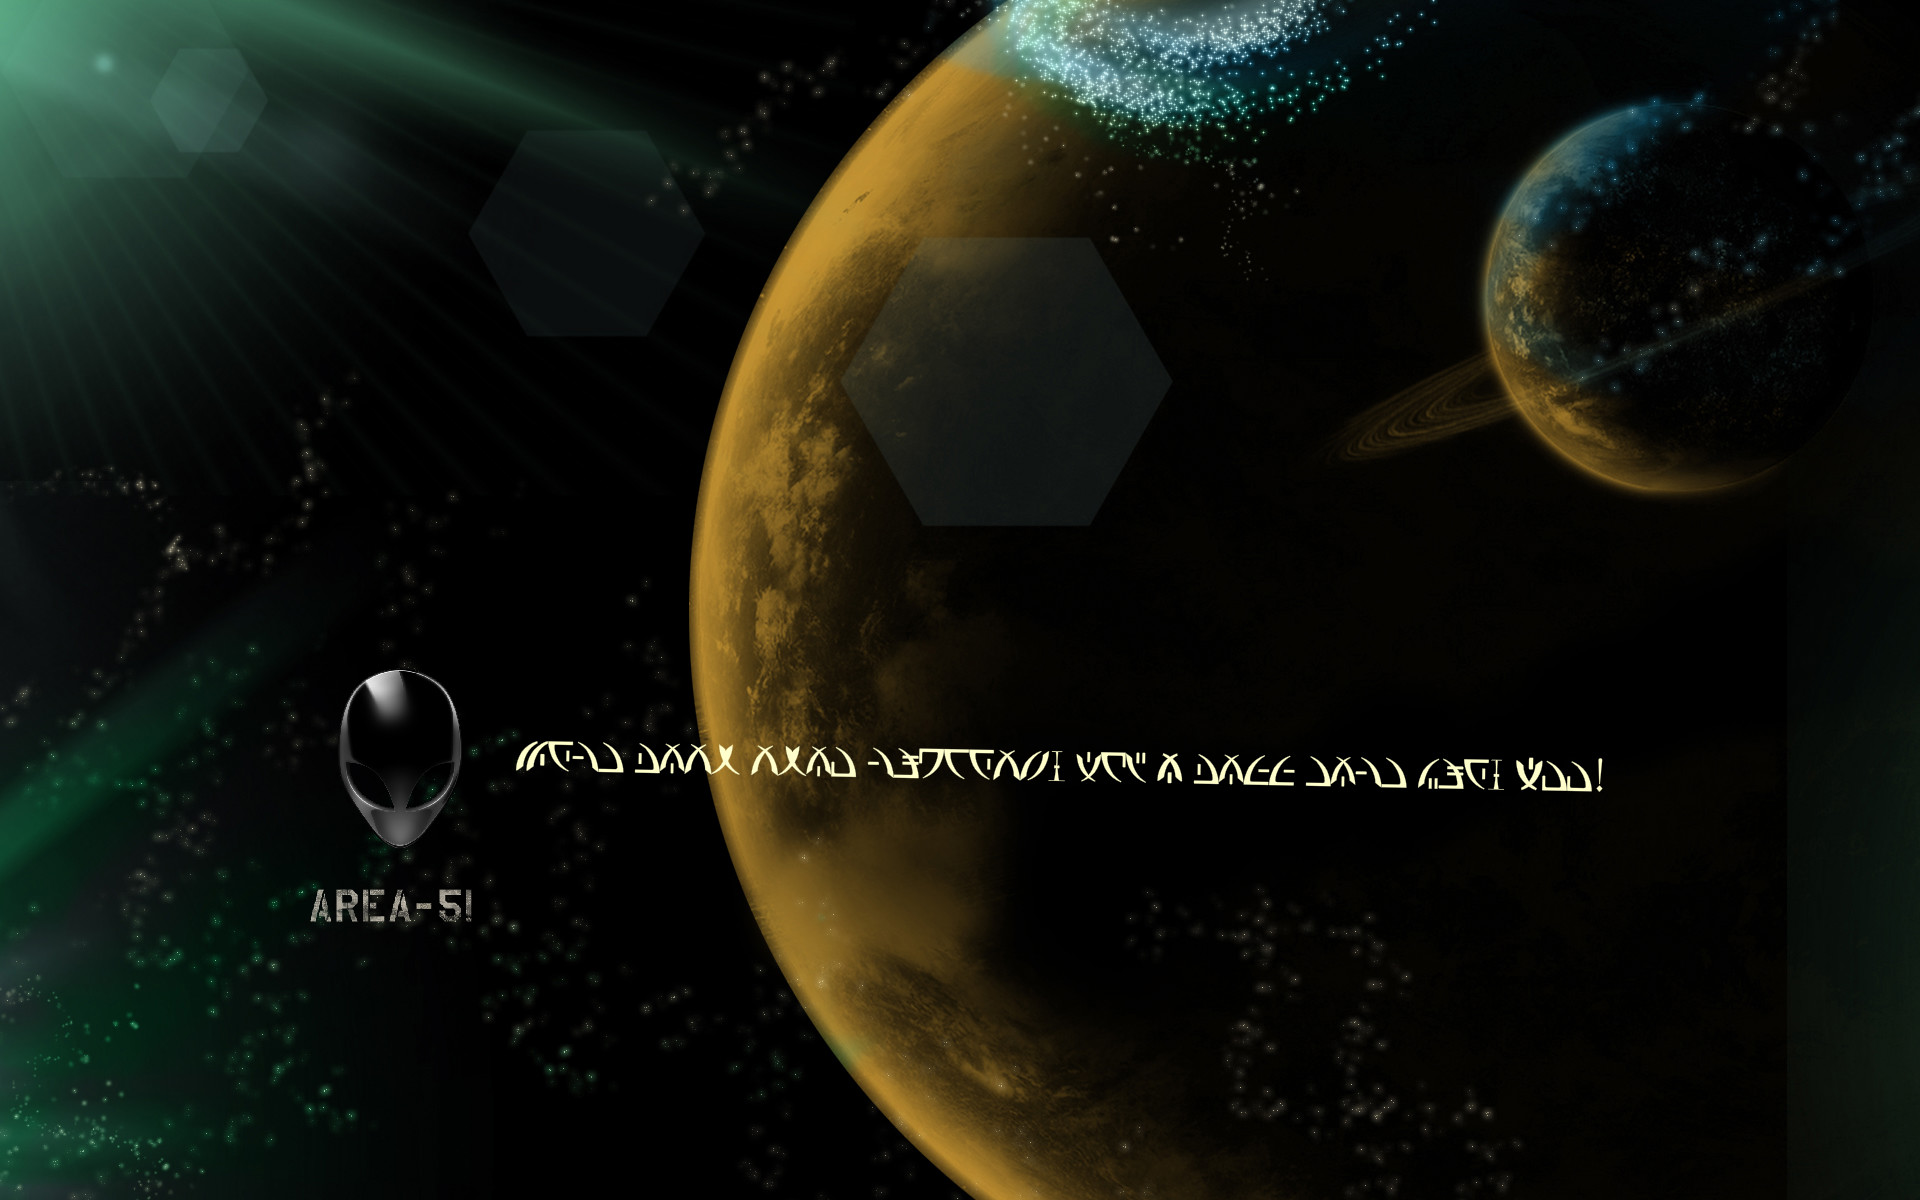 Alienware wallpapers for windows 7 wallpapersafari - Alienware Customized Wallpaper By Kgwilder Alienware Customized Wallpaper By Kgwilder